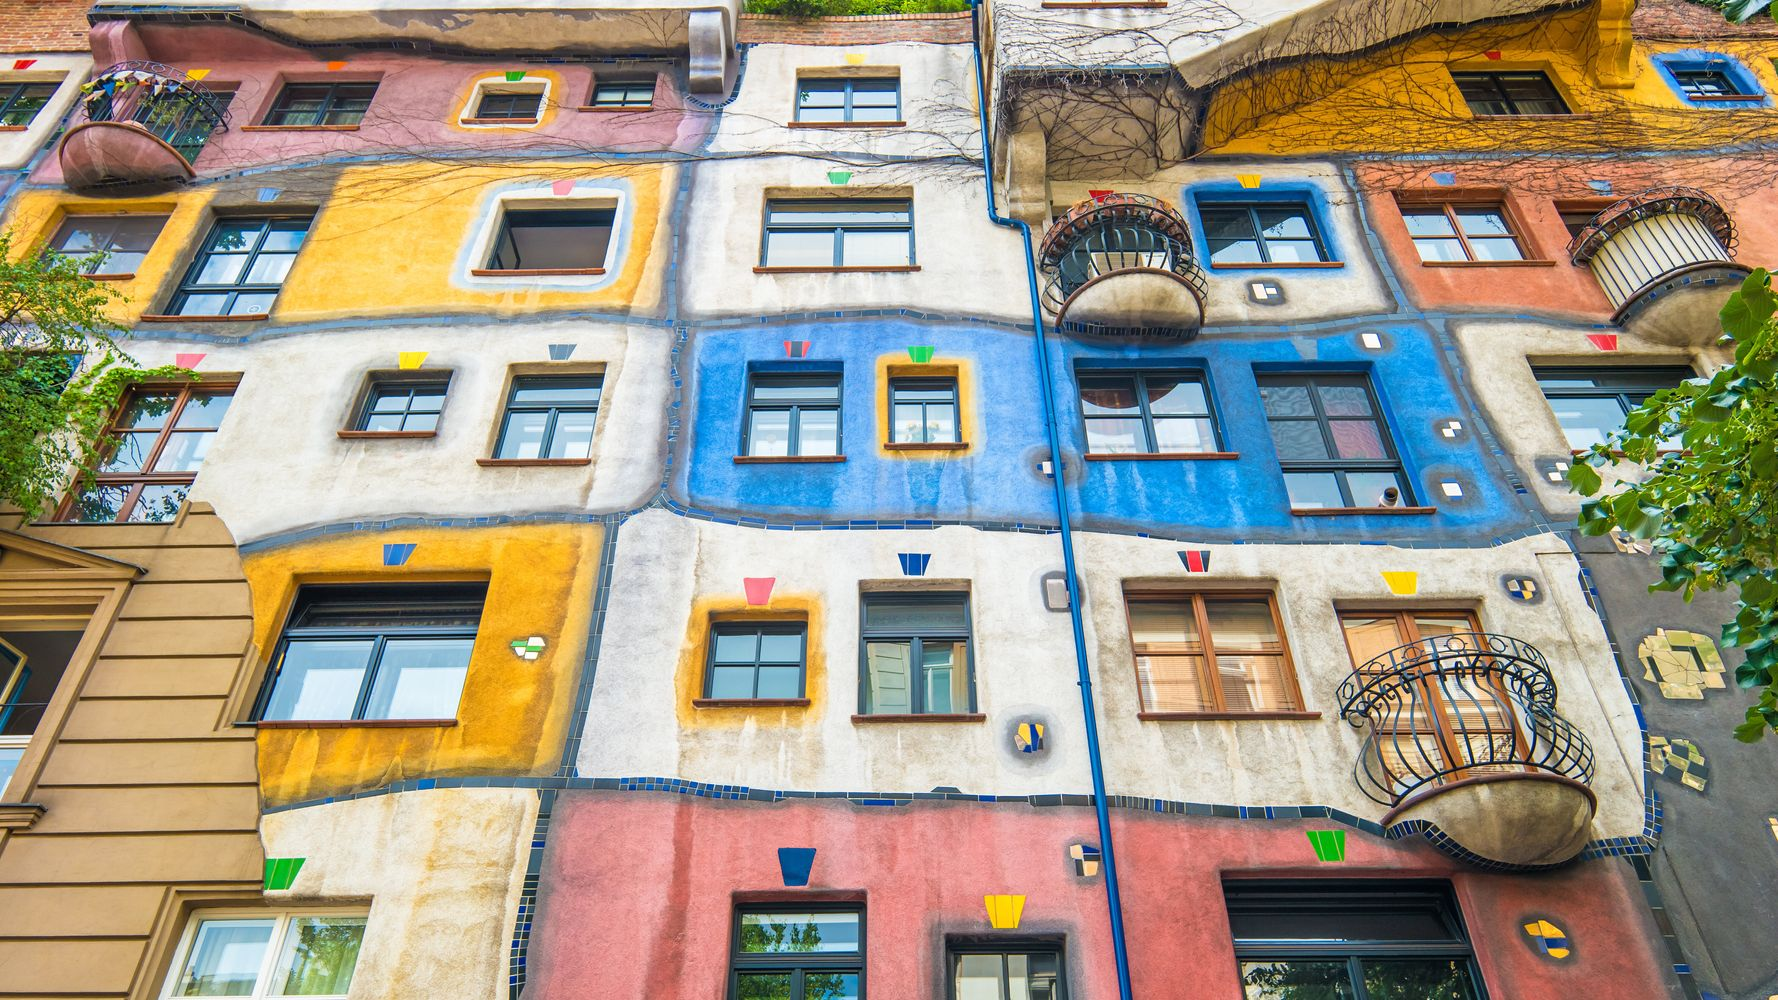 The 24 European Cities With The Most Pinterest-Worthy Homes